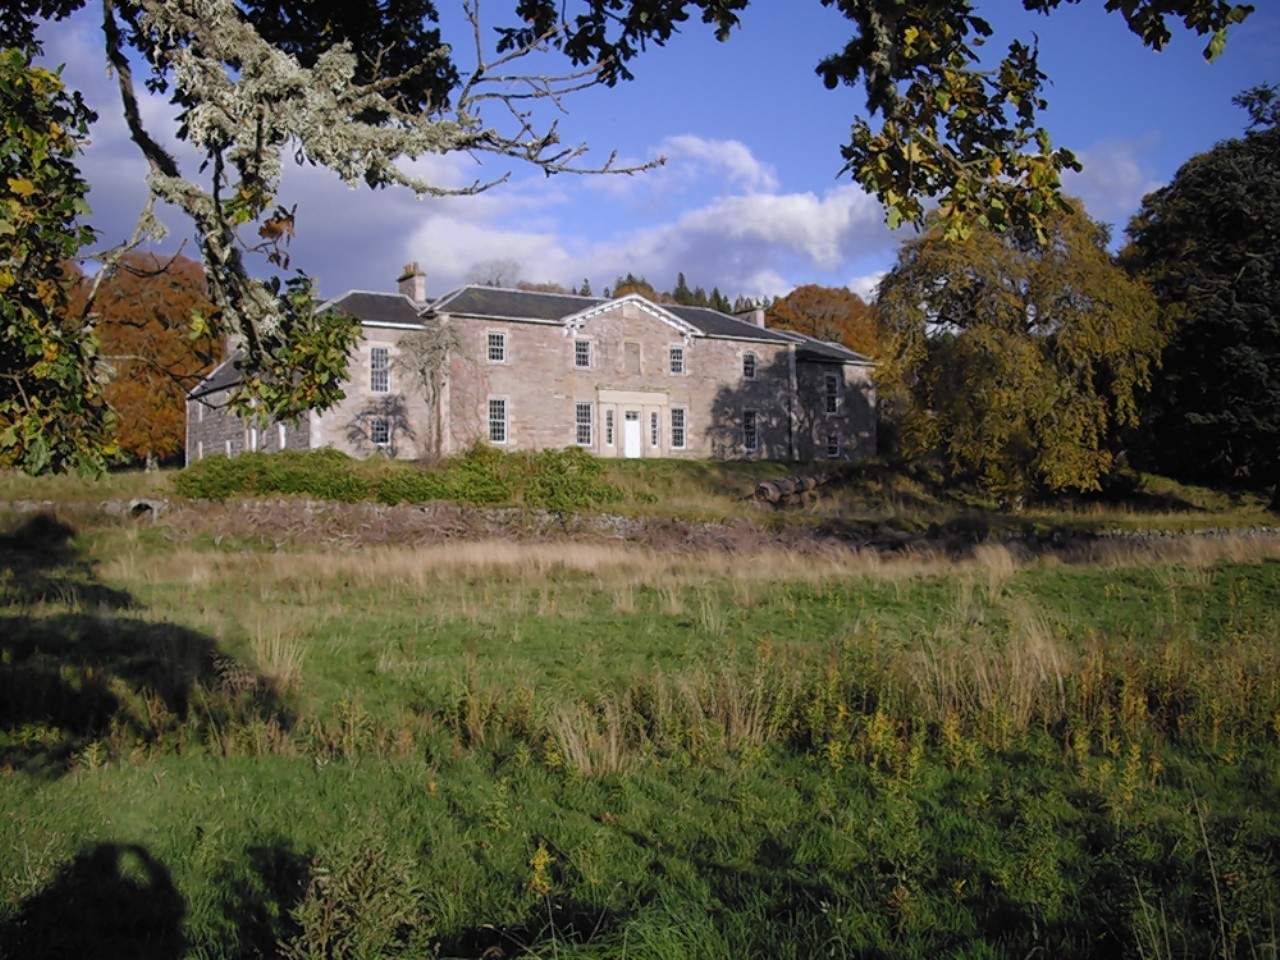 The Rosehall Estate mansion boasts 22 bedrooms